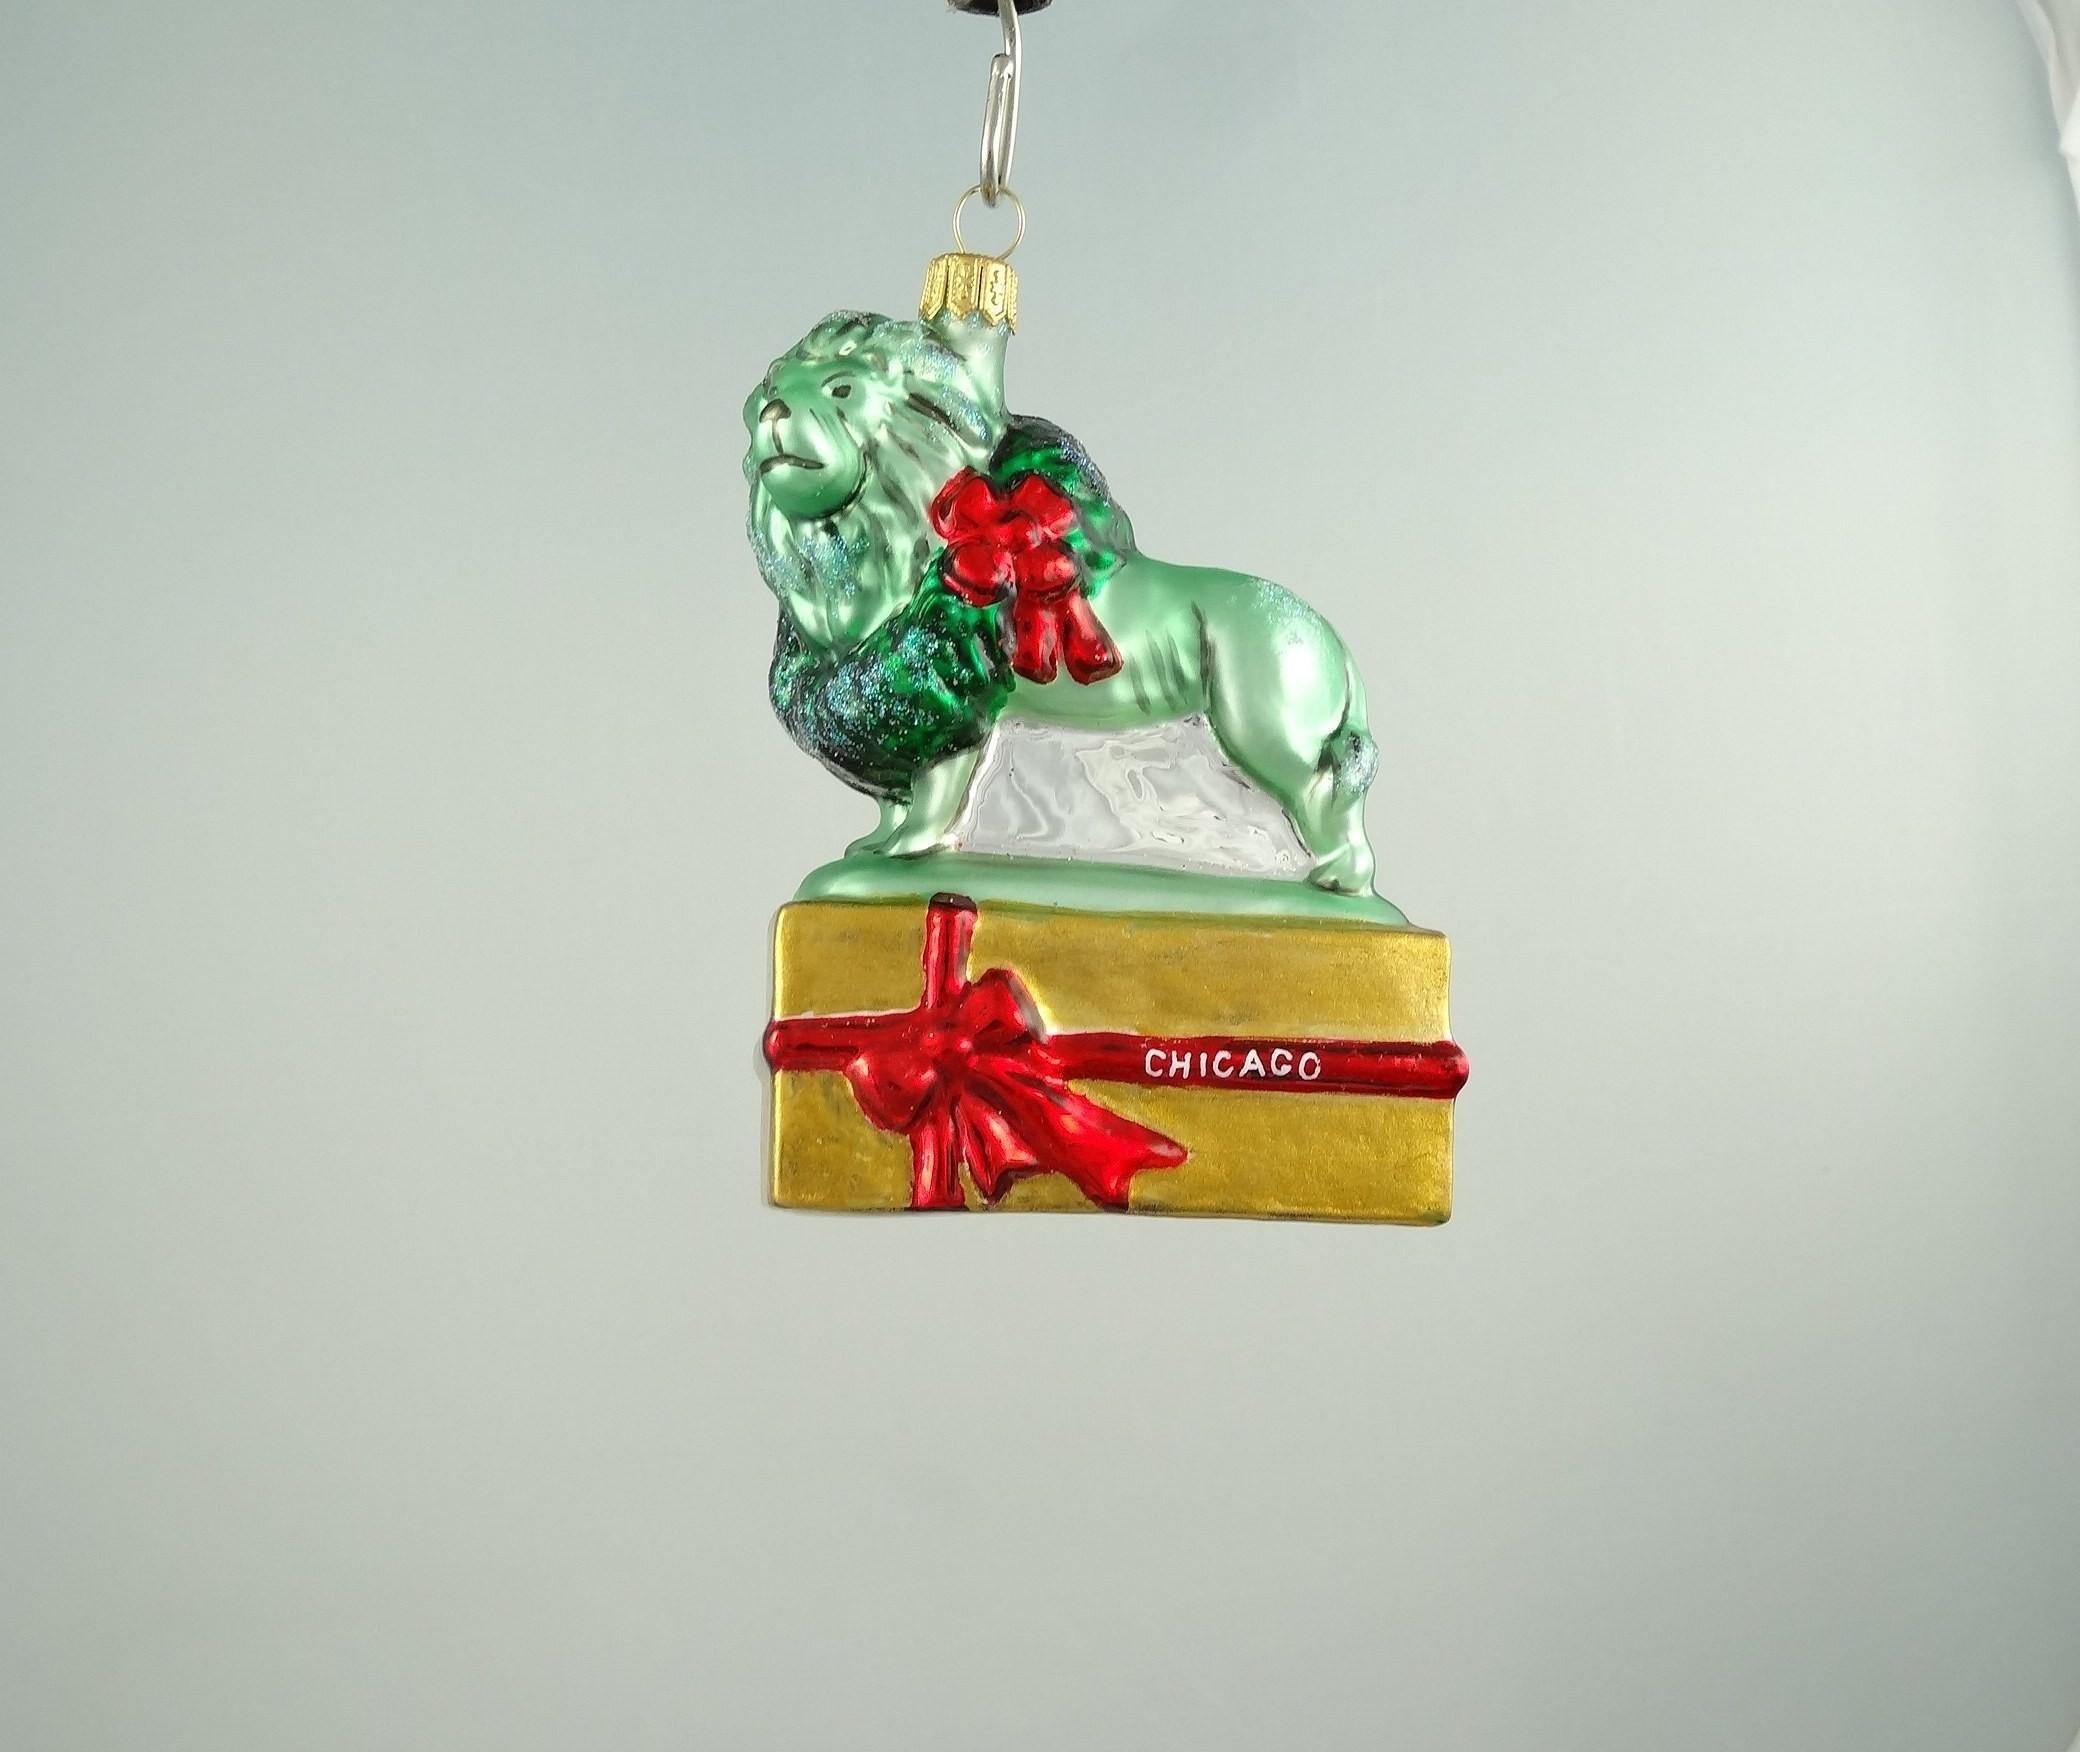 Chicago Lion Ornament Gold Mys949 Christmas